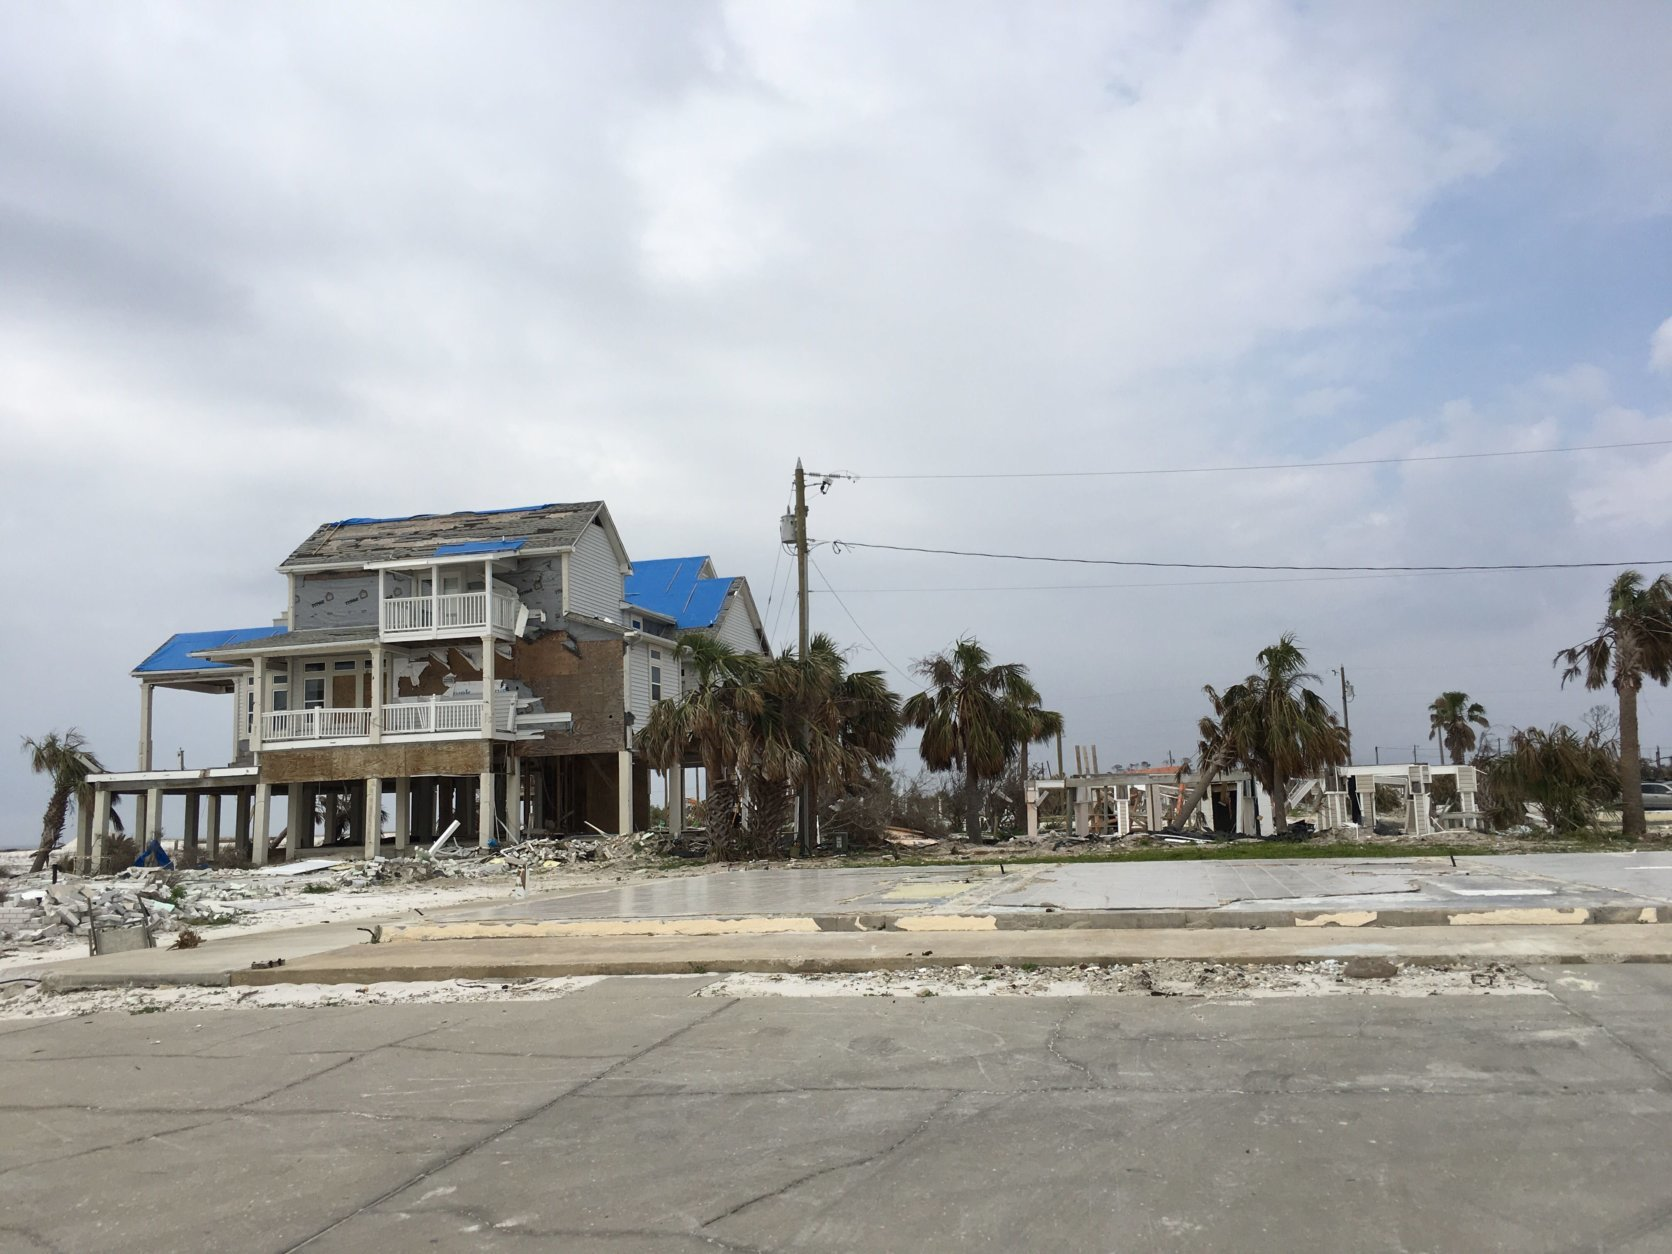 At Mexico Beach there are empty concrete pads where homes had once been. (WTOP/Joan Jones)